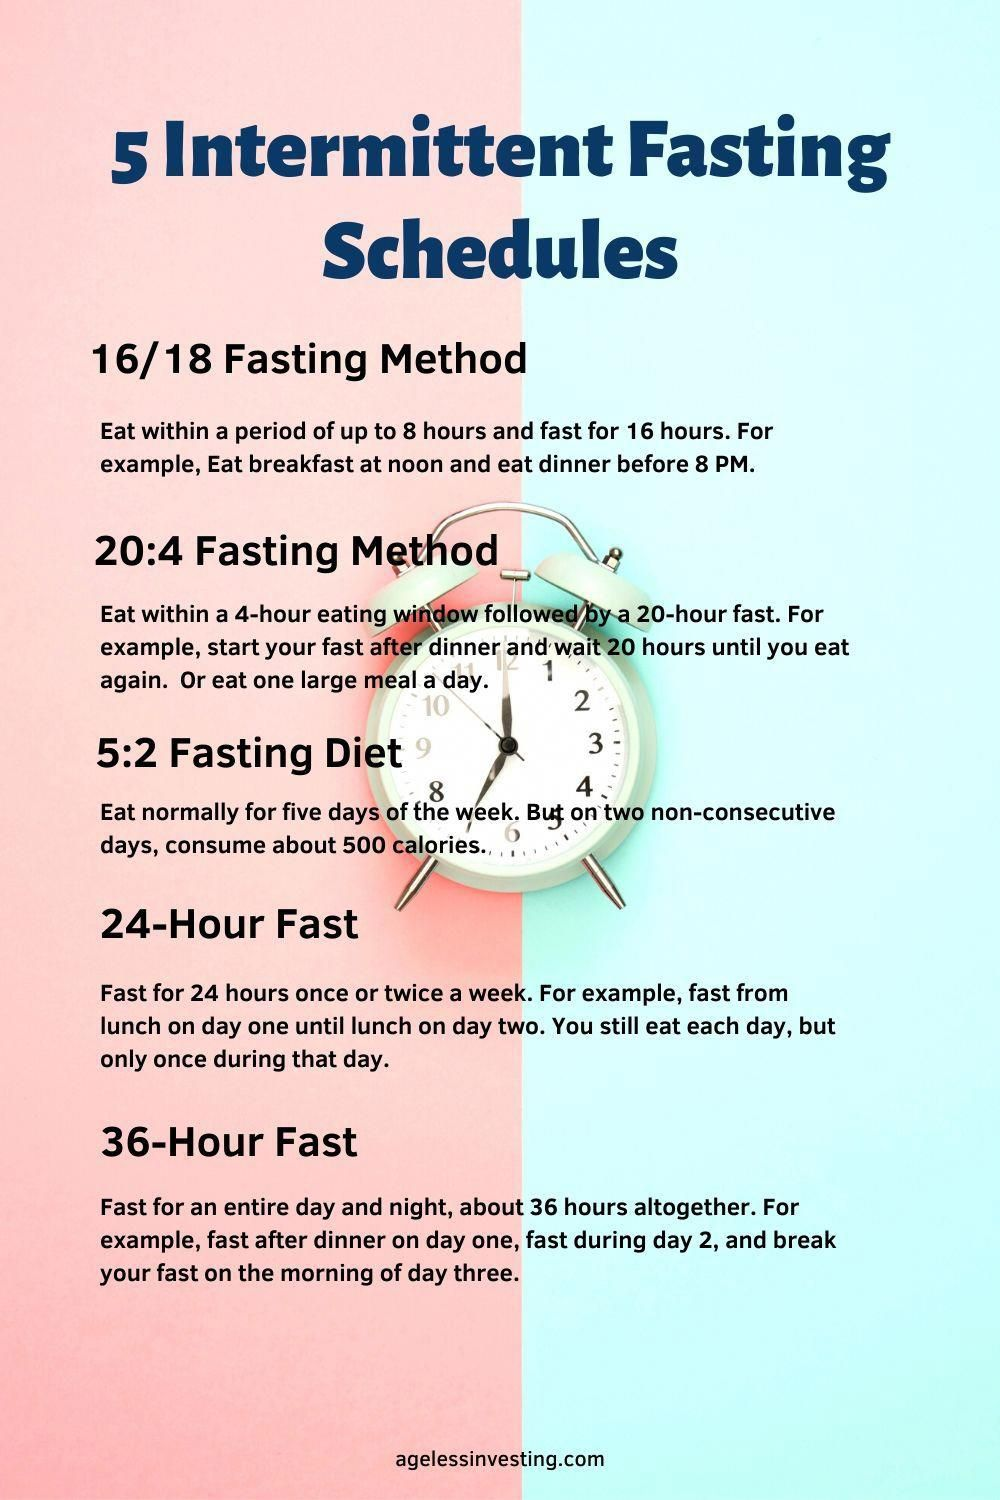 The Five Most Popular Intermittent Fasting Schedules 1 16 18 Fasting Method 2 20 4 Fasting Method Fasting Diet Plan Fasting Diet Intermittent Fasting Diet